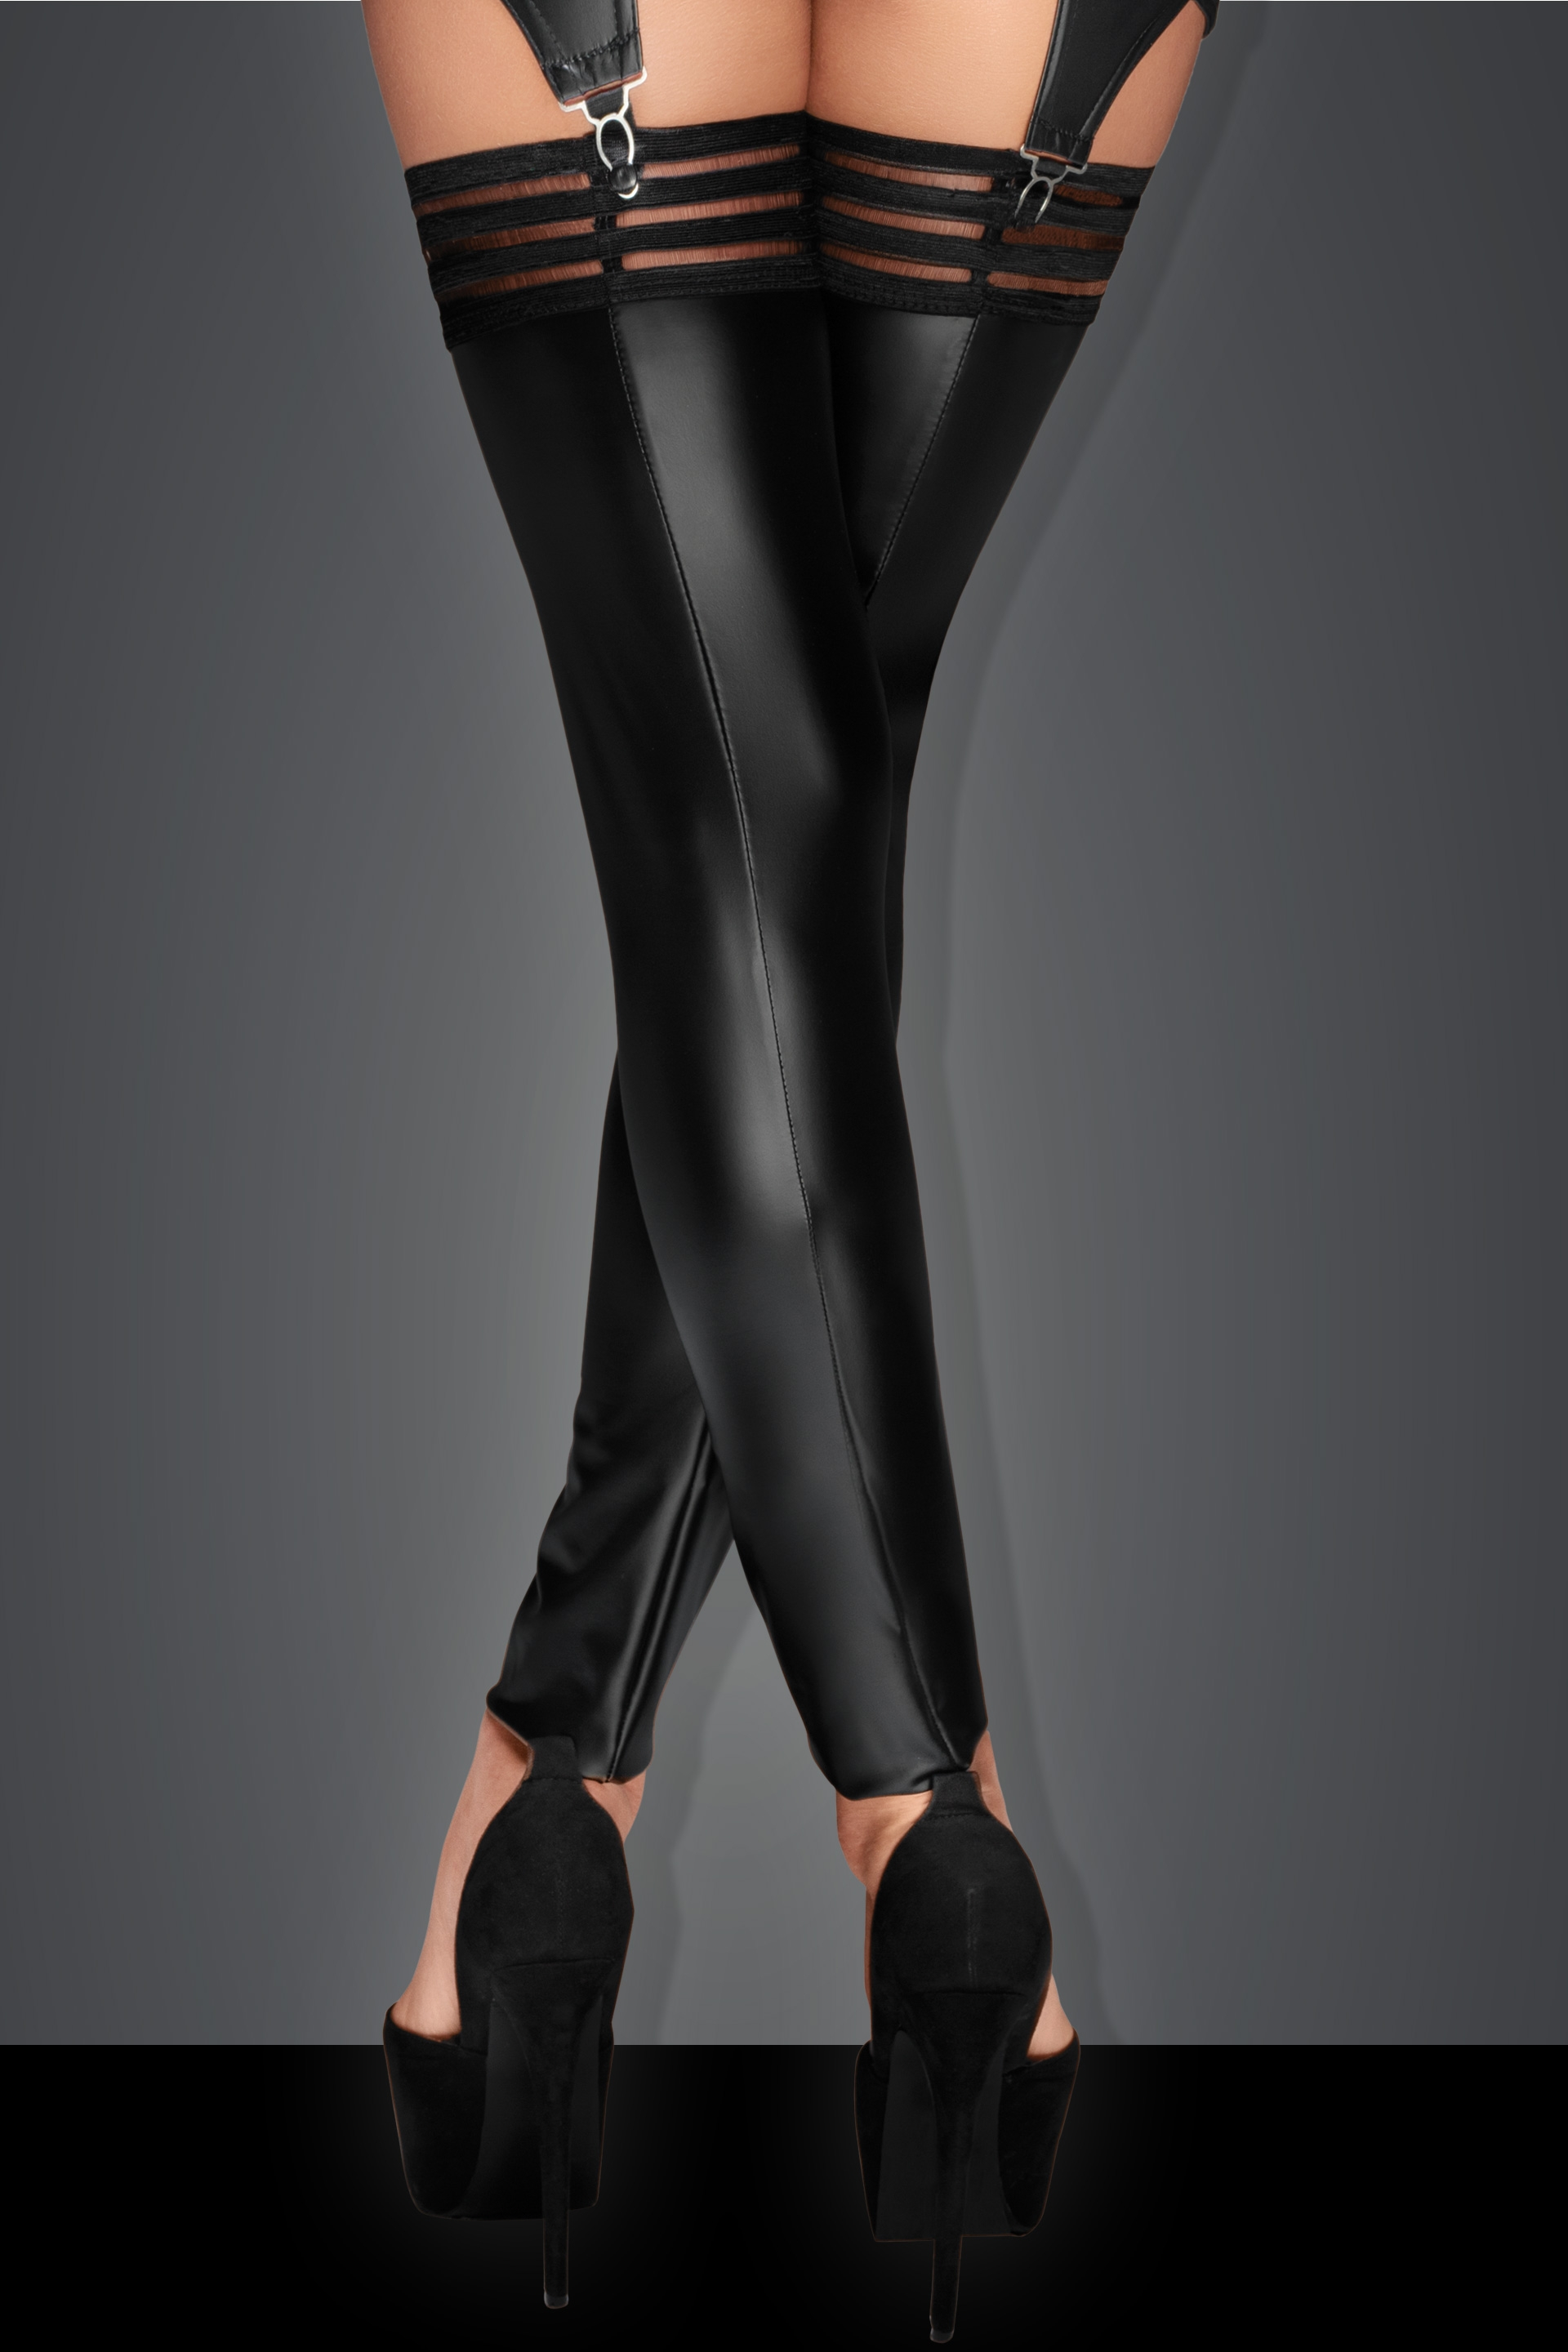 Noir Power Wetlook Stockings